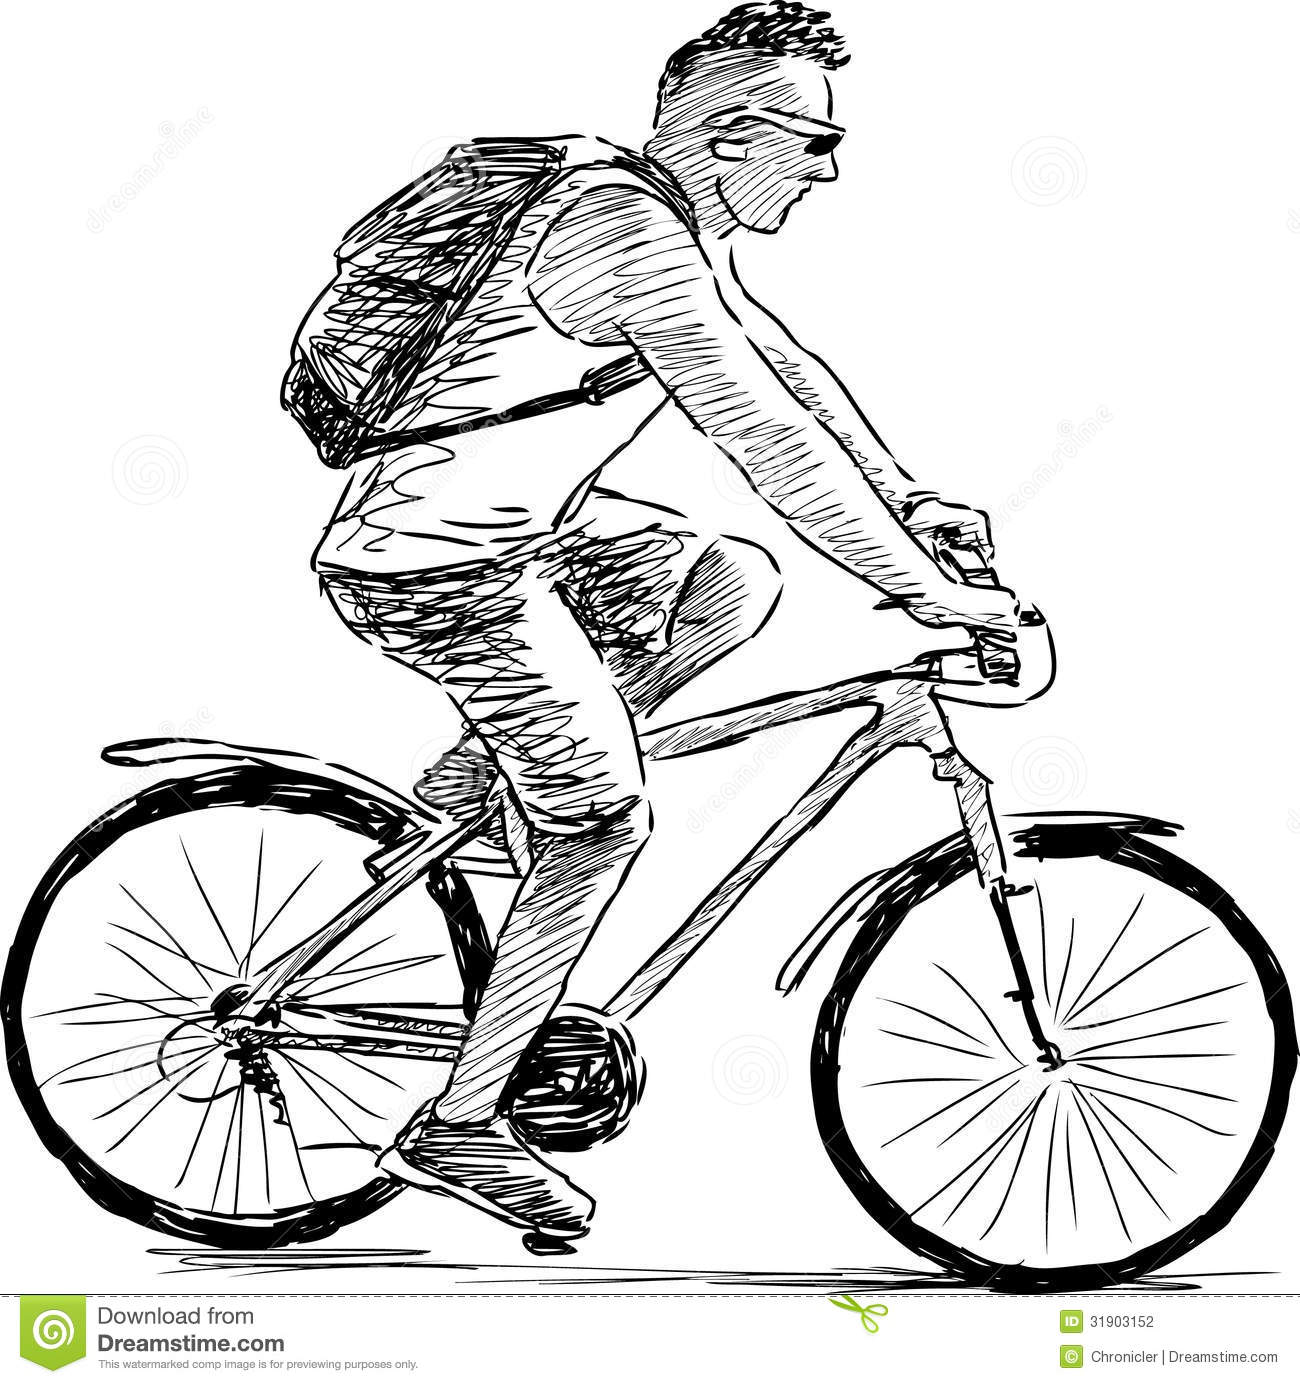 Man riding a cycle stock photo. Image of male, bicycle ...